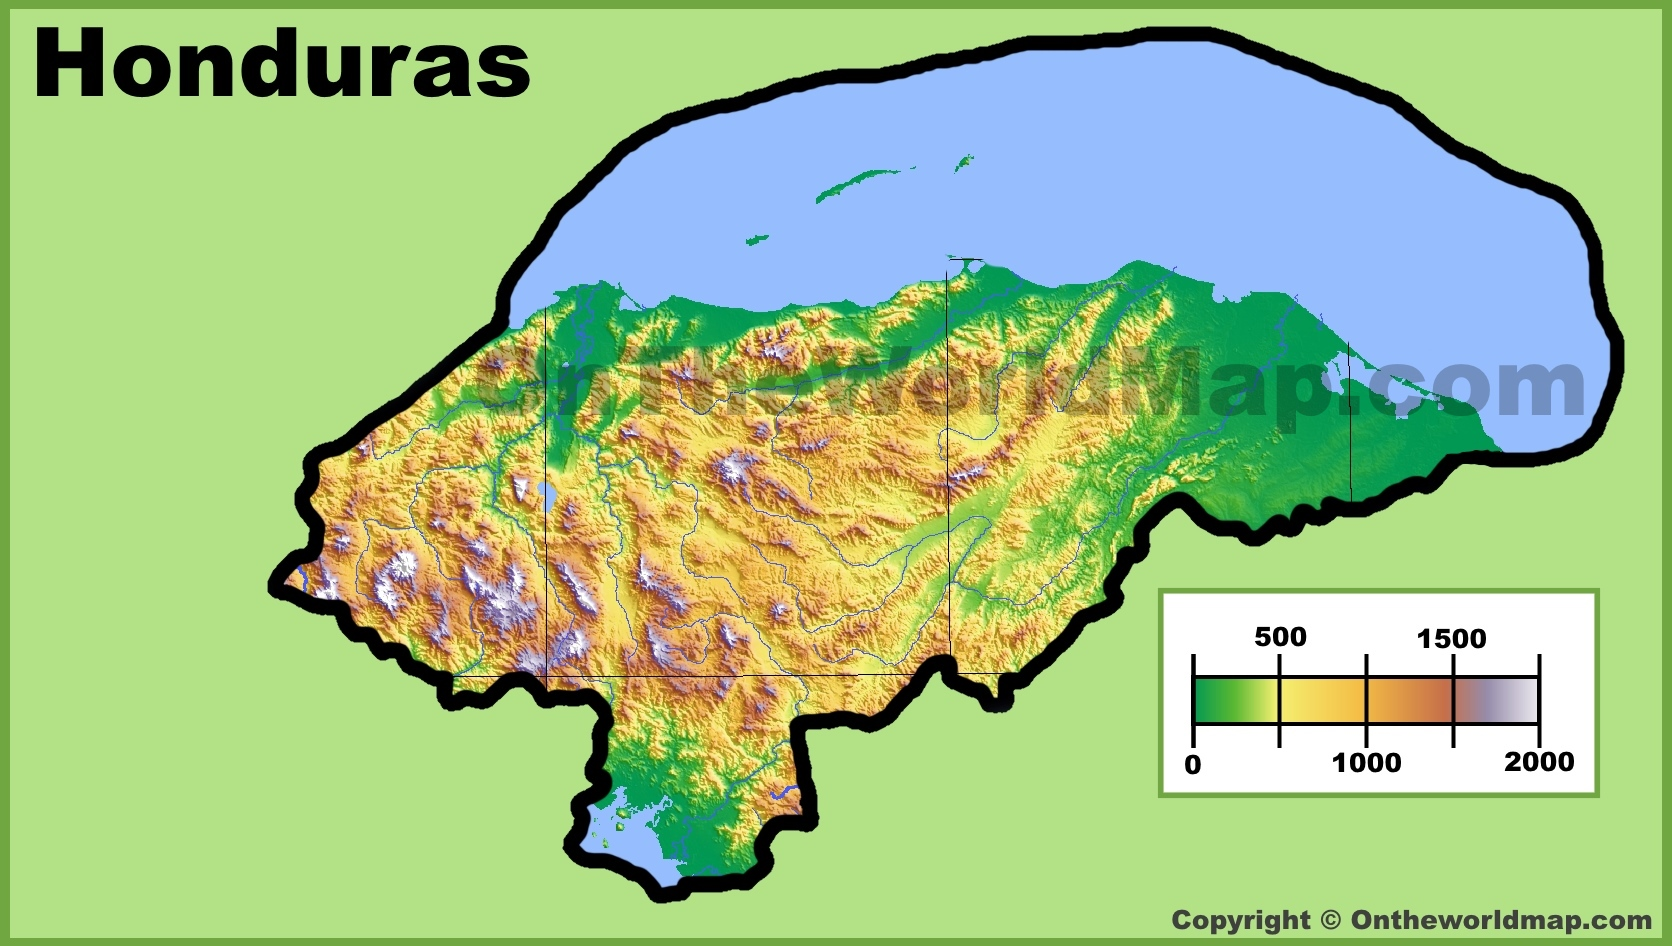 Honduras Physical Map - Hondurus map